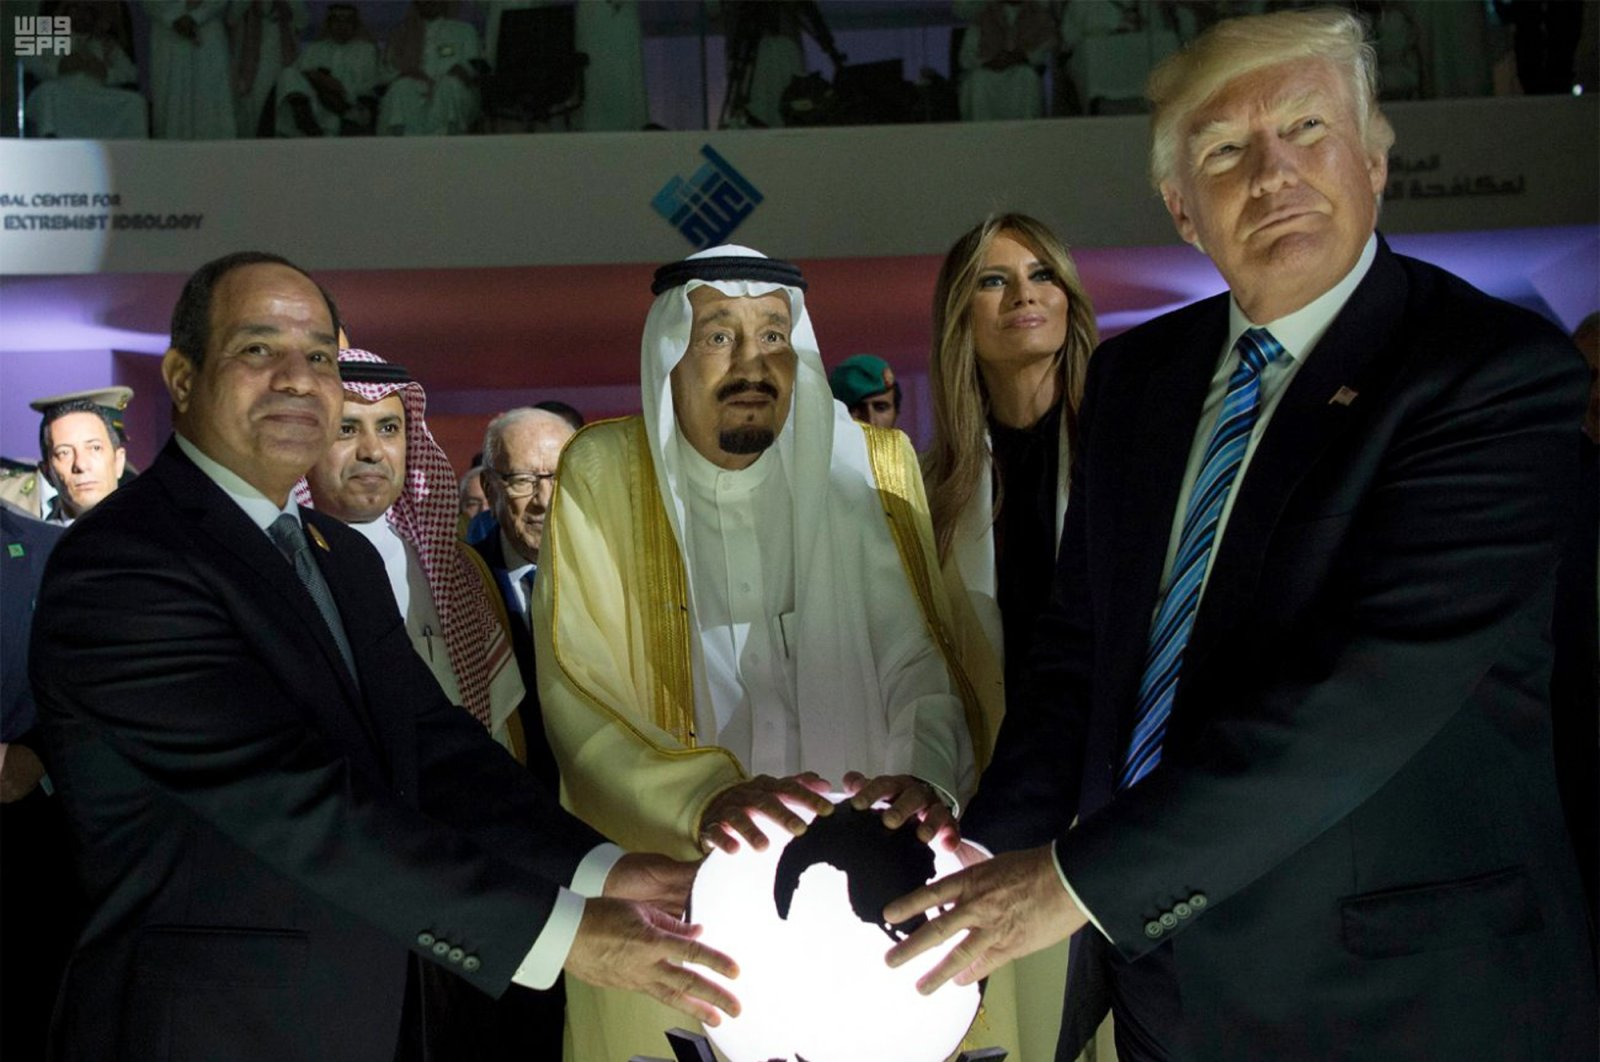 From left to right, Egyptian President Abdel-Fattah el-Sissi, Saudi King Salman, then U.S. First Lady Melania Trump and then U.S. President Donald Trump put their hands on an illuminated globe during the inauguration ceremony of the Global Center for Combating Extremist Ideology, Riyadh, Saudi Arabia, May 21, 2017. (AP Photo)